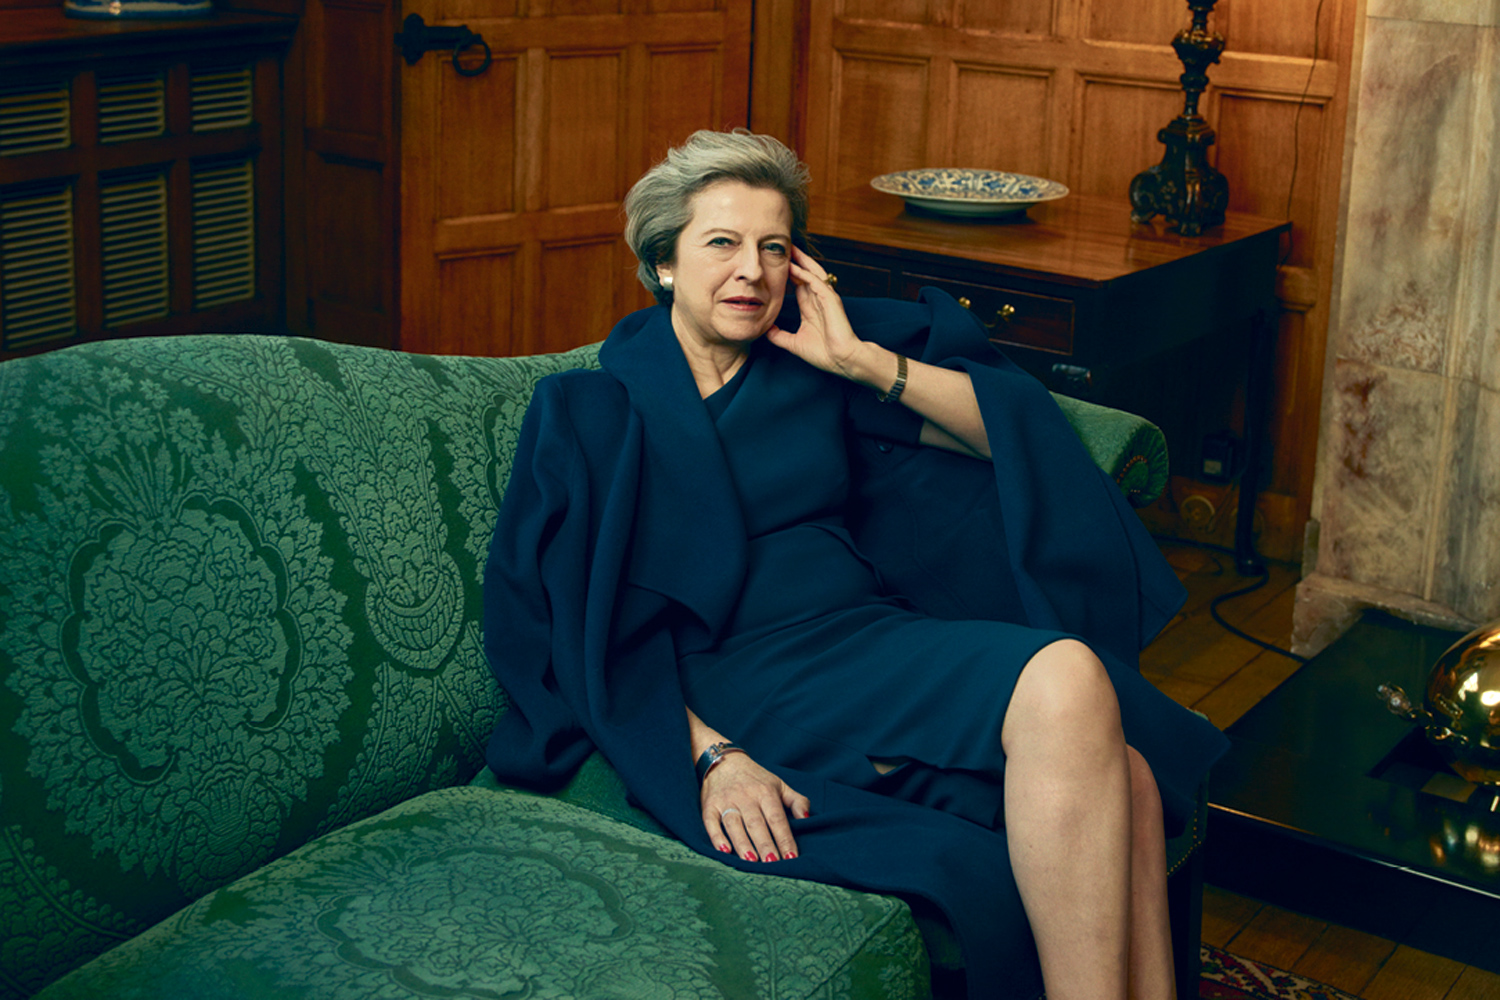 Theresa May, the first British prime minister to be featured in US Vogue, wearing a coat and dress by LK Bennett for an article in the April issue of American Vogue. Photo credits | Portrait photographer @Annie Leibovitz.